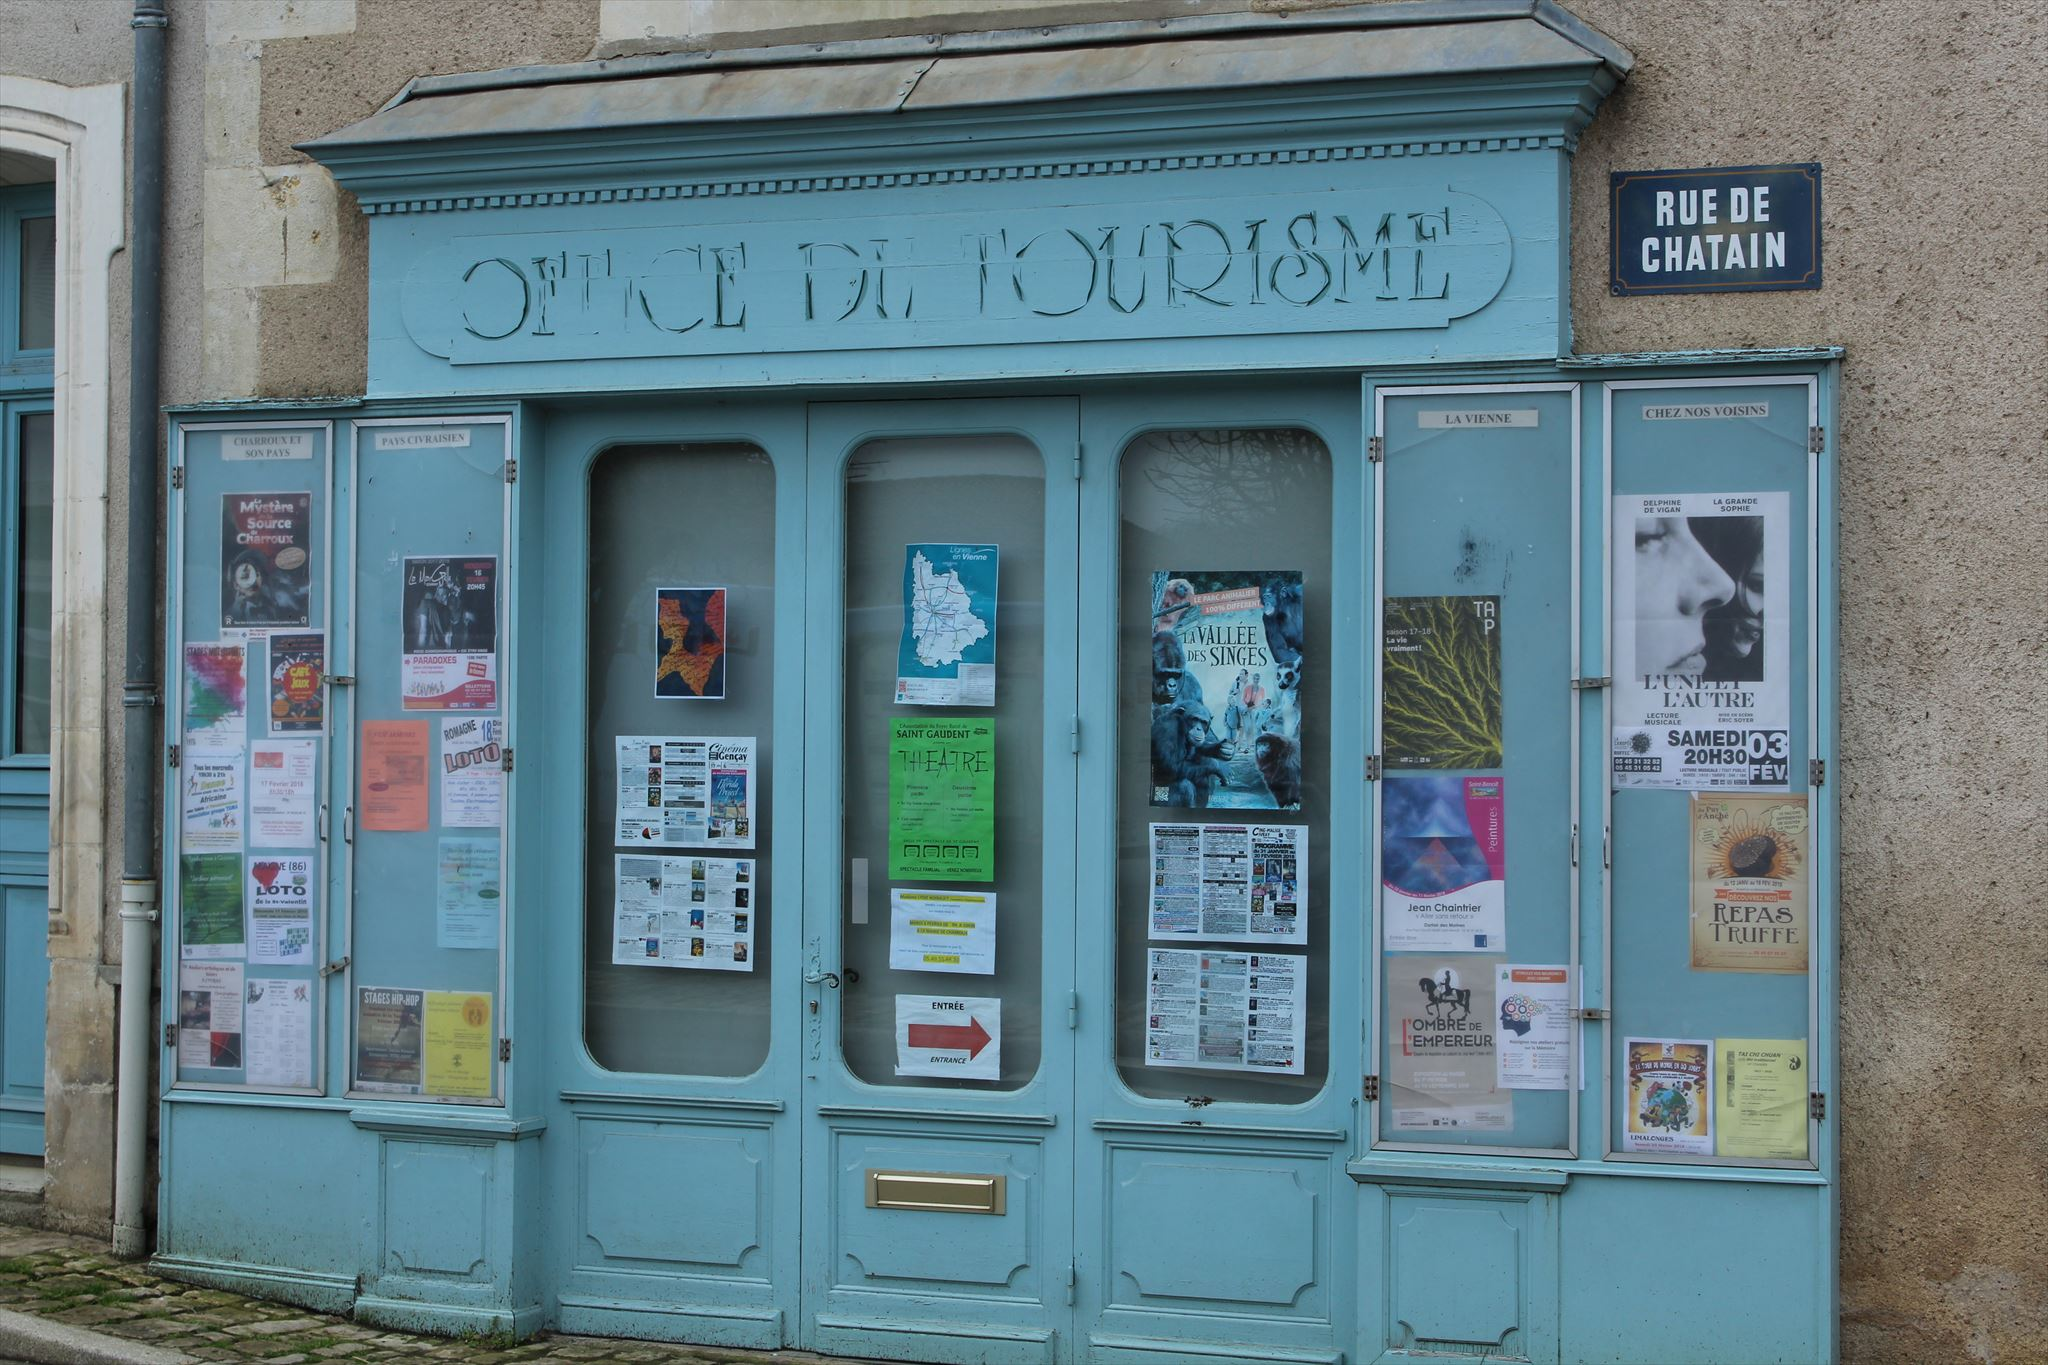 Office du tourisme charroux france tourist information centers visitor centers on - Office du tourisme d aubenas ...